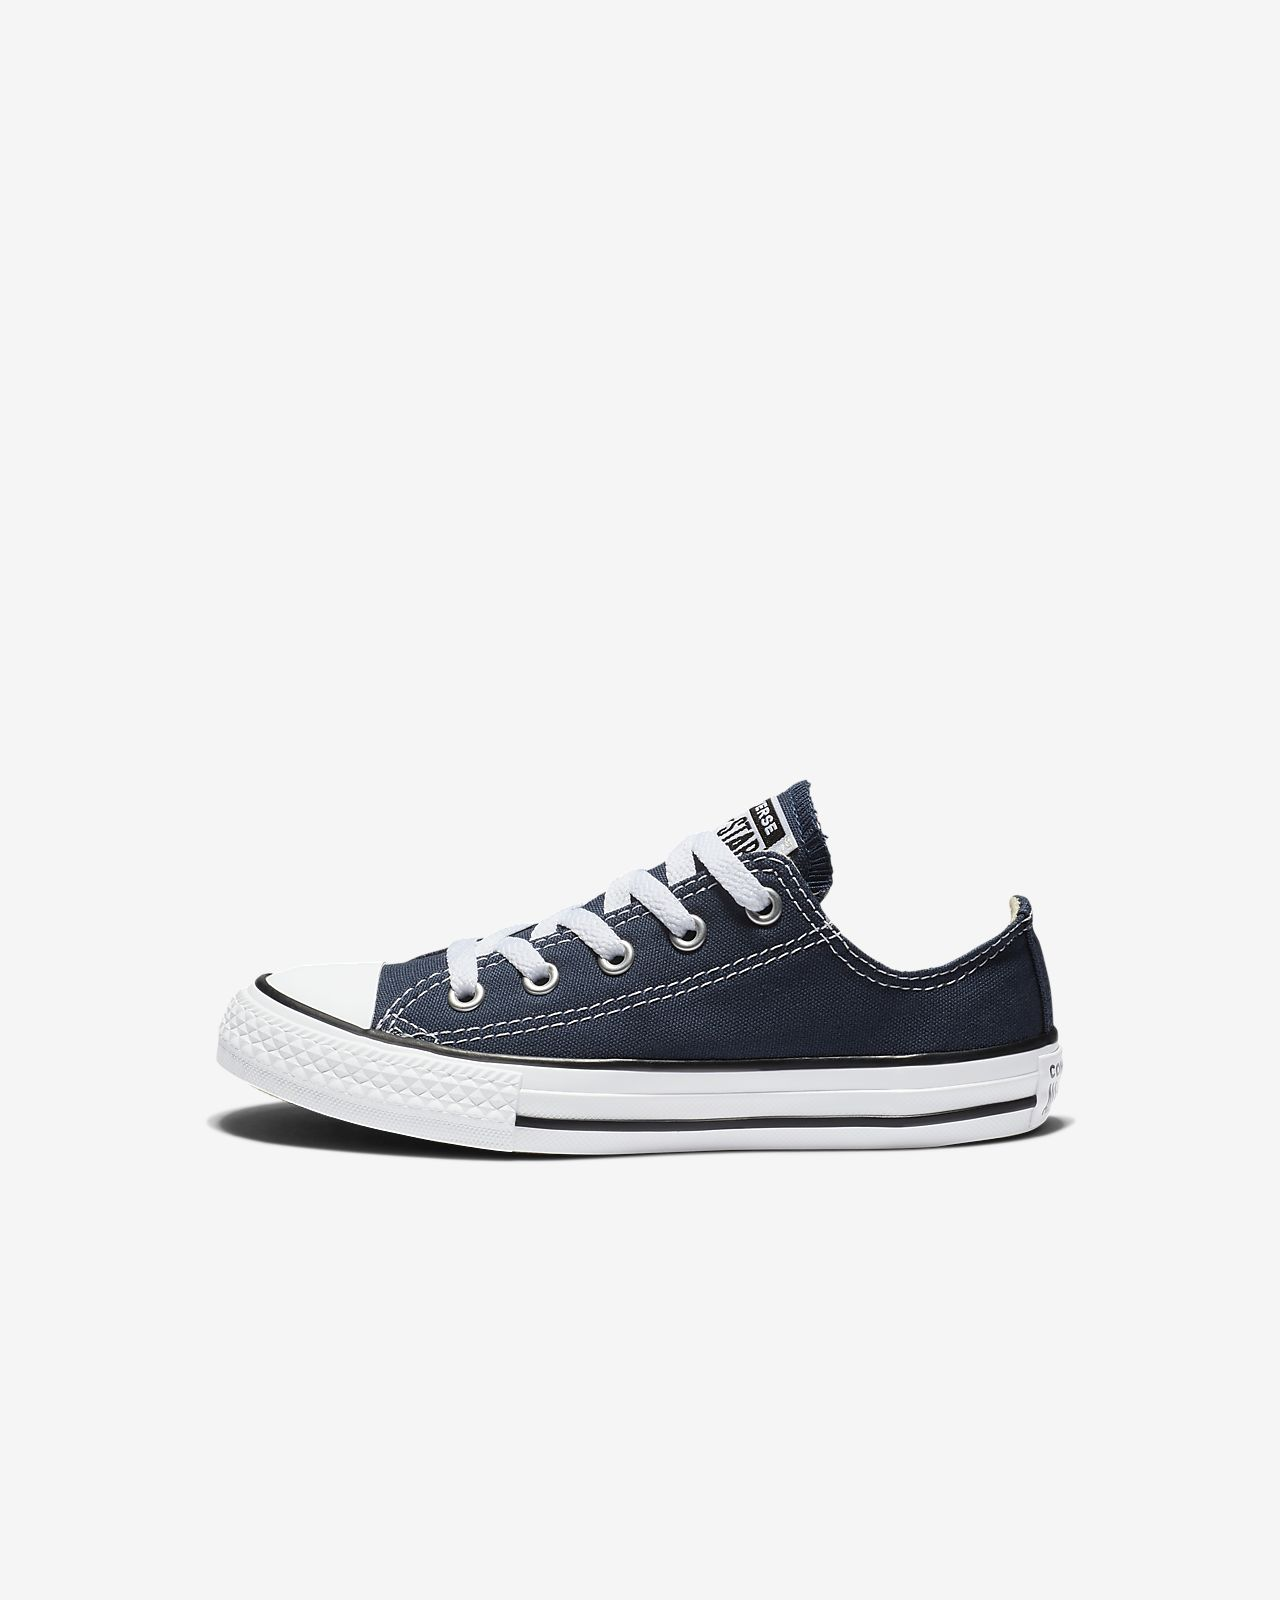 c9226fdb39f6 Converse Chuck Taylor All Star Low Top (10.5c-3y) Little Kids  Shoe ...